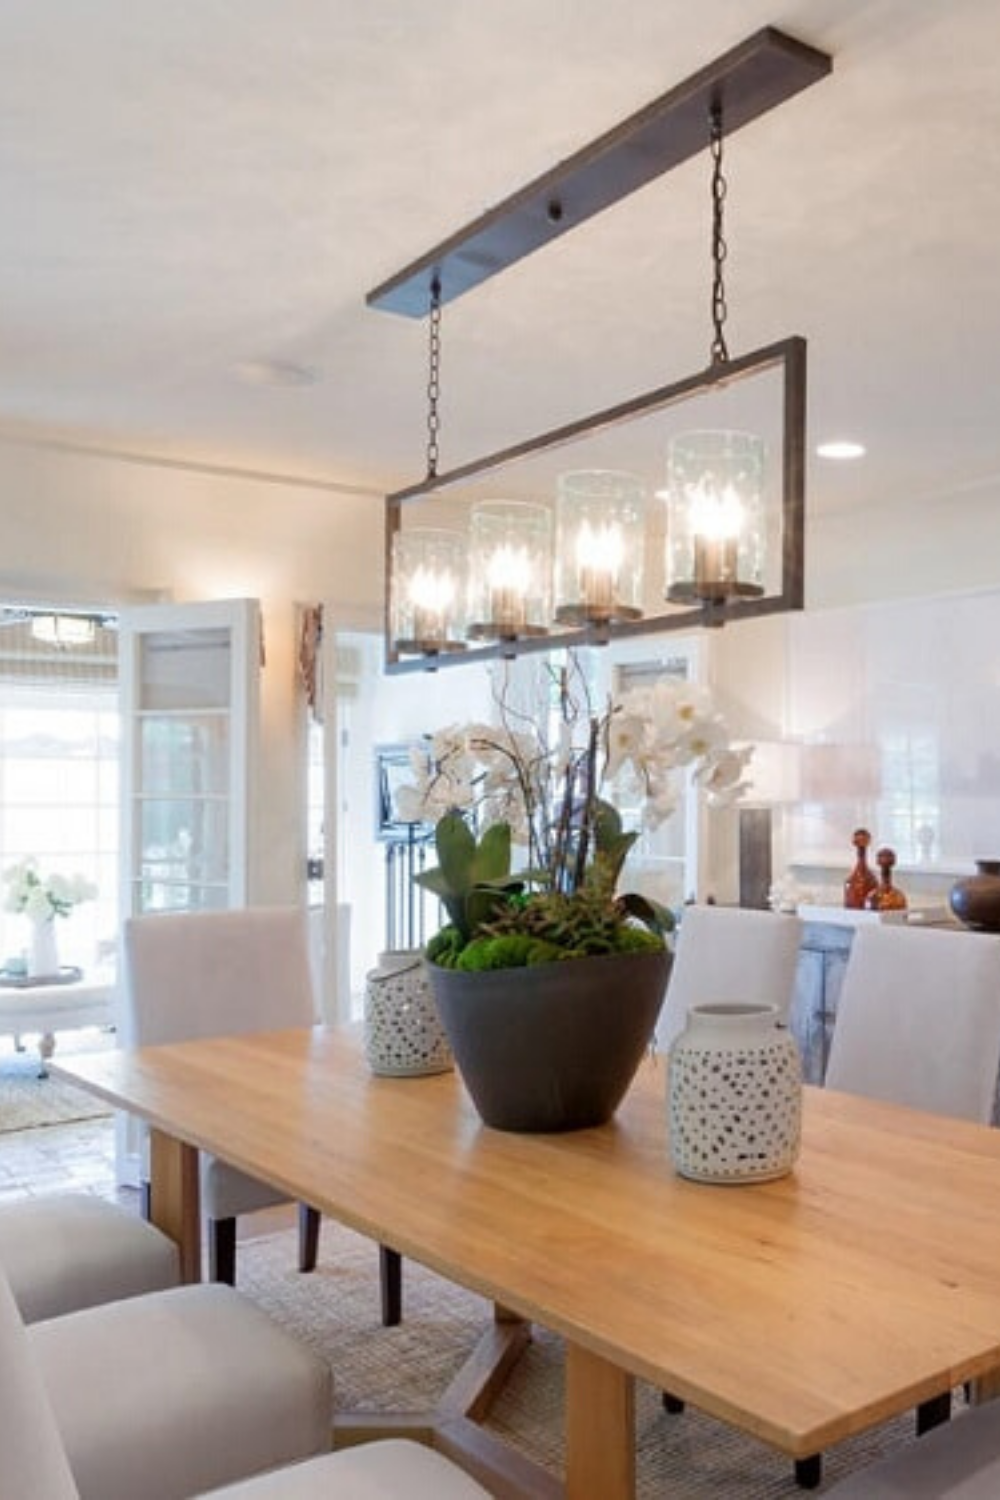 This modern dining room has modern design and simple yet stylish decor. There's a large rectangular wooden dining table surrounded by beige cushioned chairs and topped with decorative lighting that contrasts the ceiling. #DiningRoomDecor #DiningRoomIdeas #DiningRoomDesign  Courtesy of TopTenRealEstateDeals.com